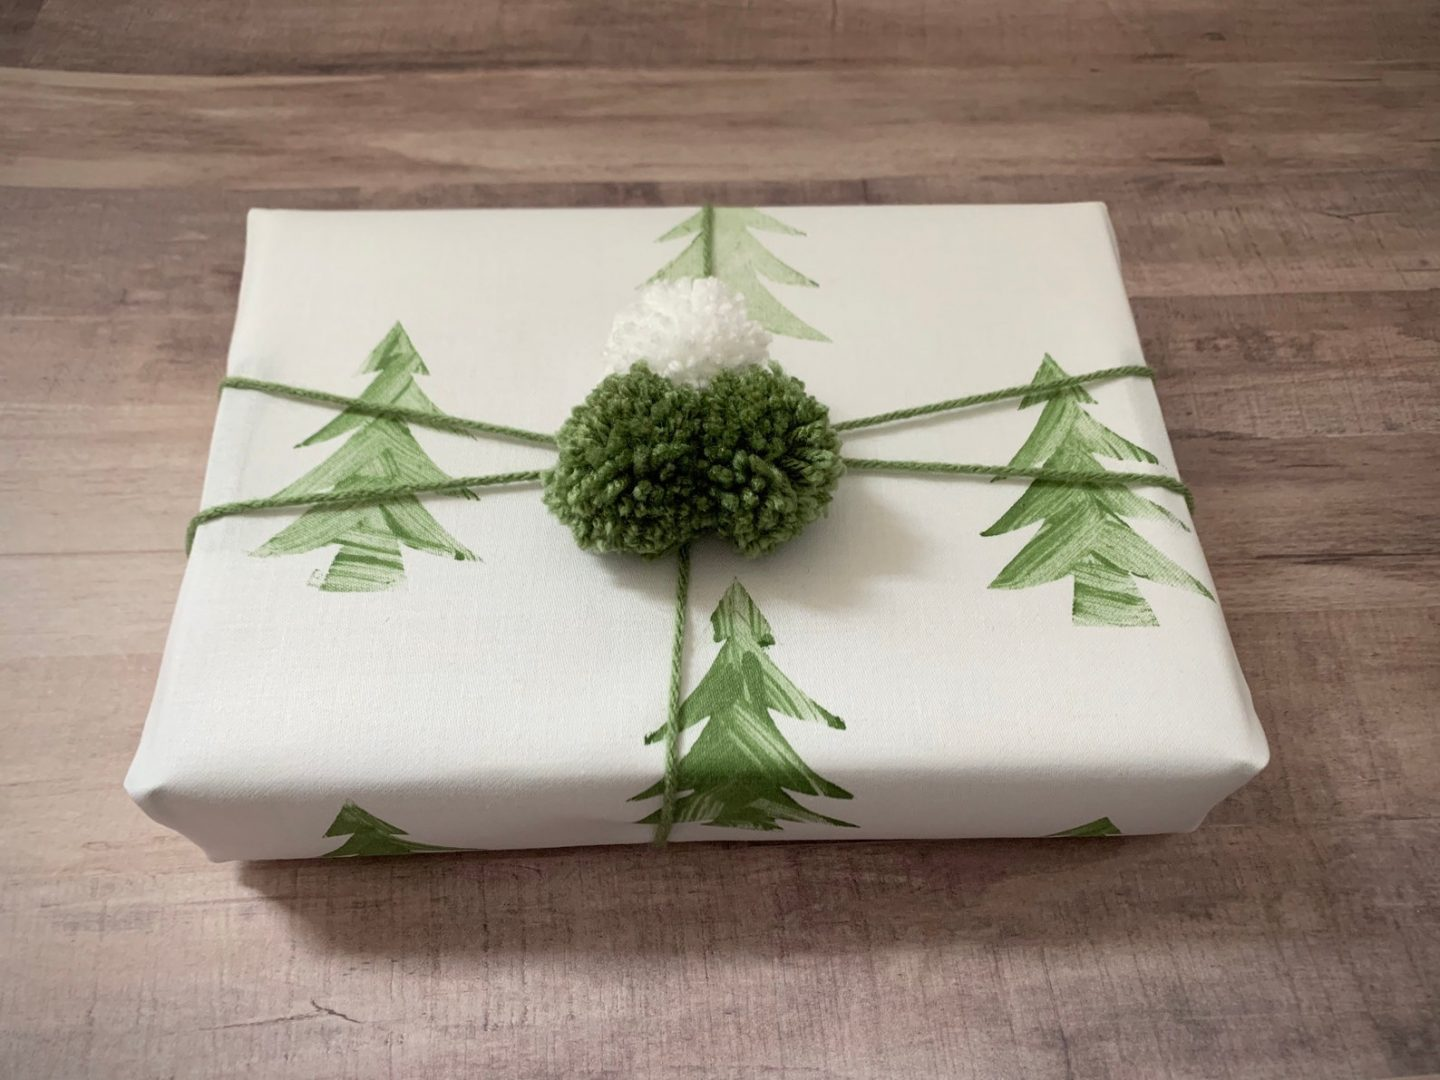 Christmas wrapping paper with Christmas trees and Green Pom Poms